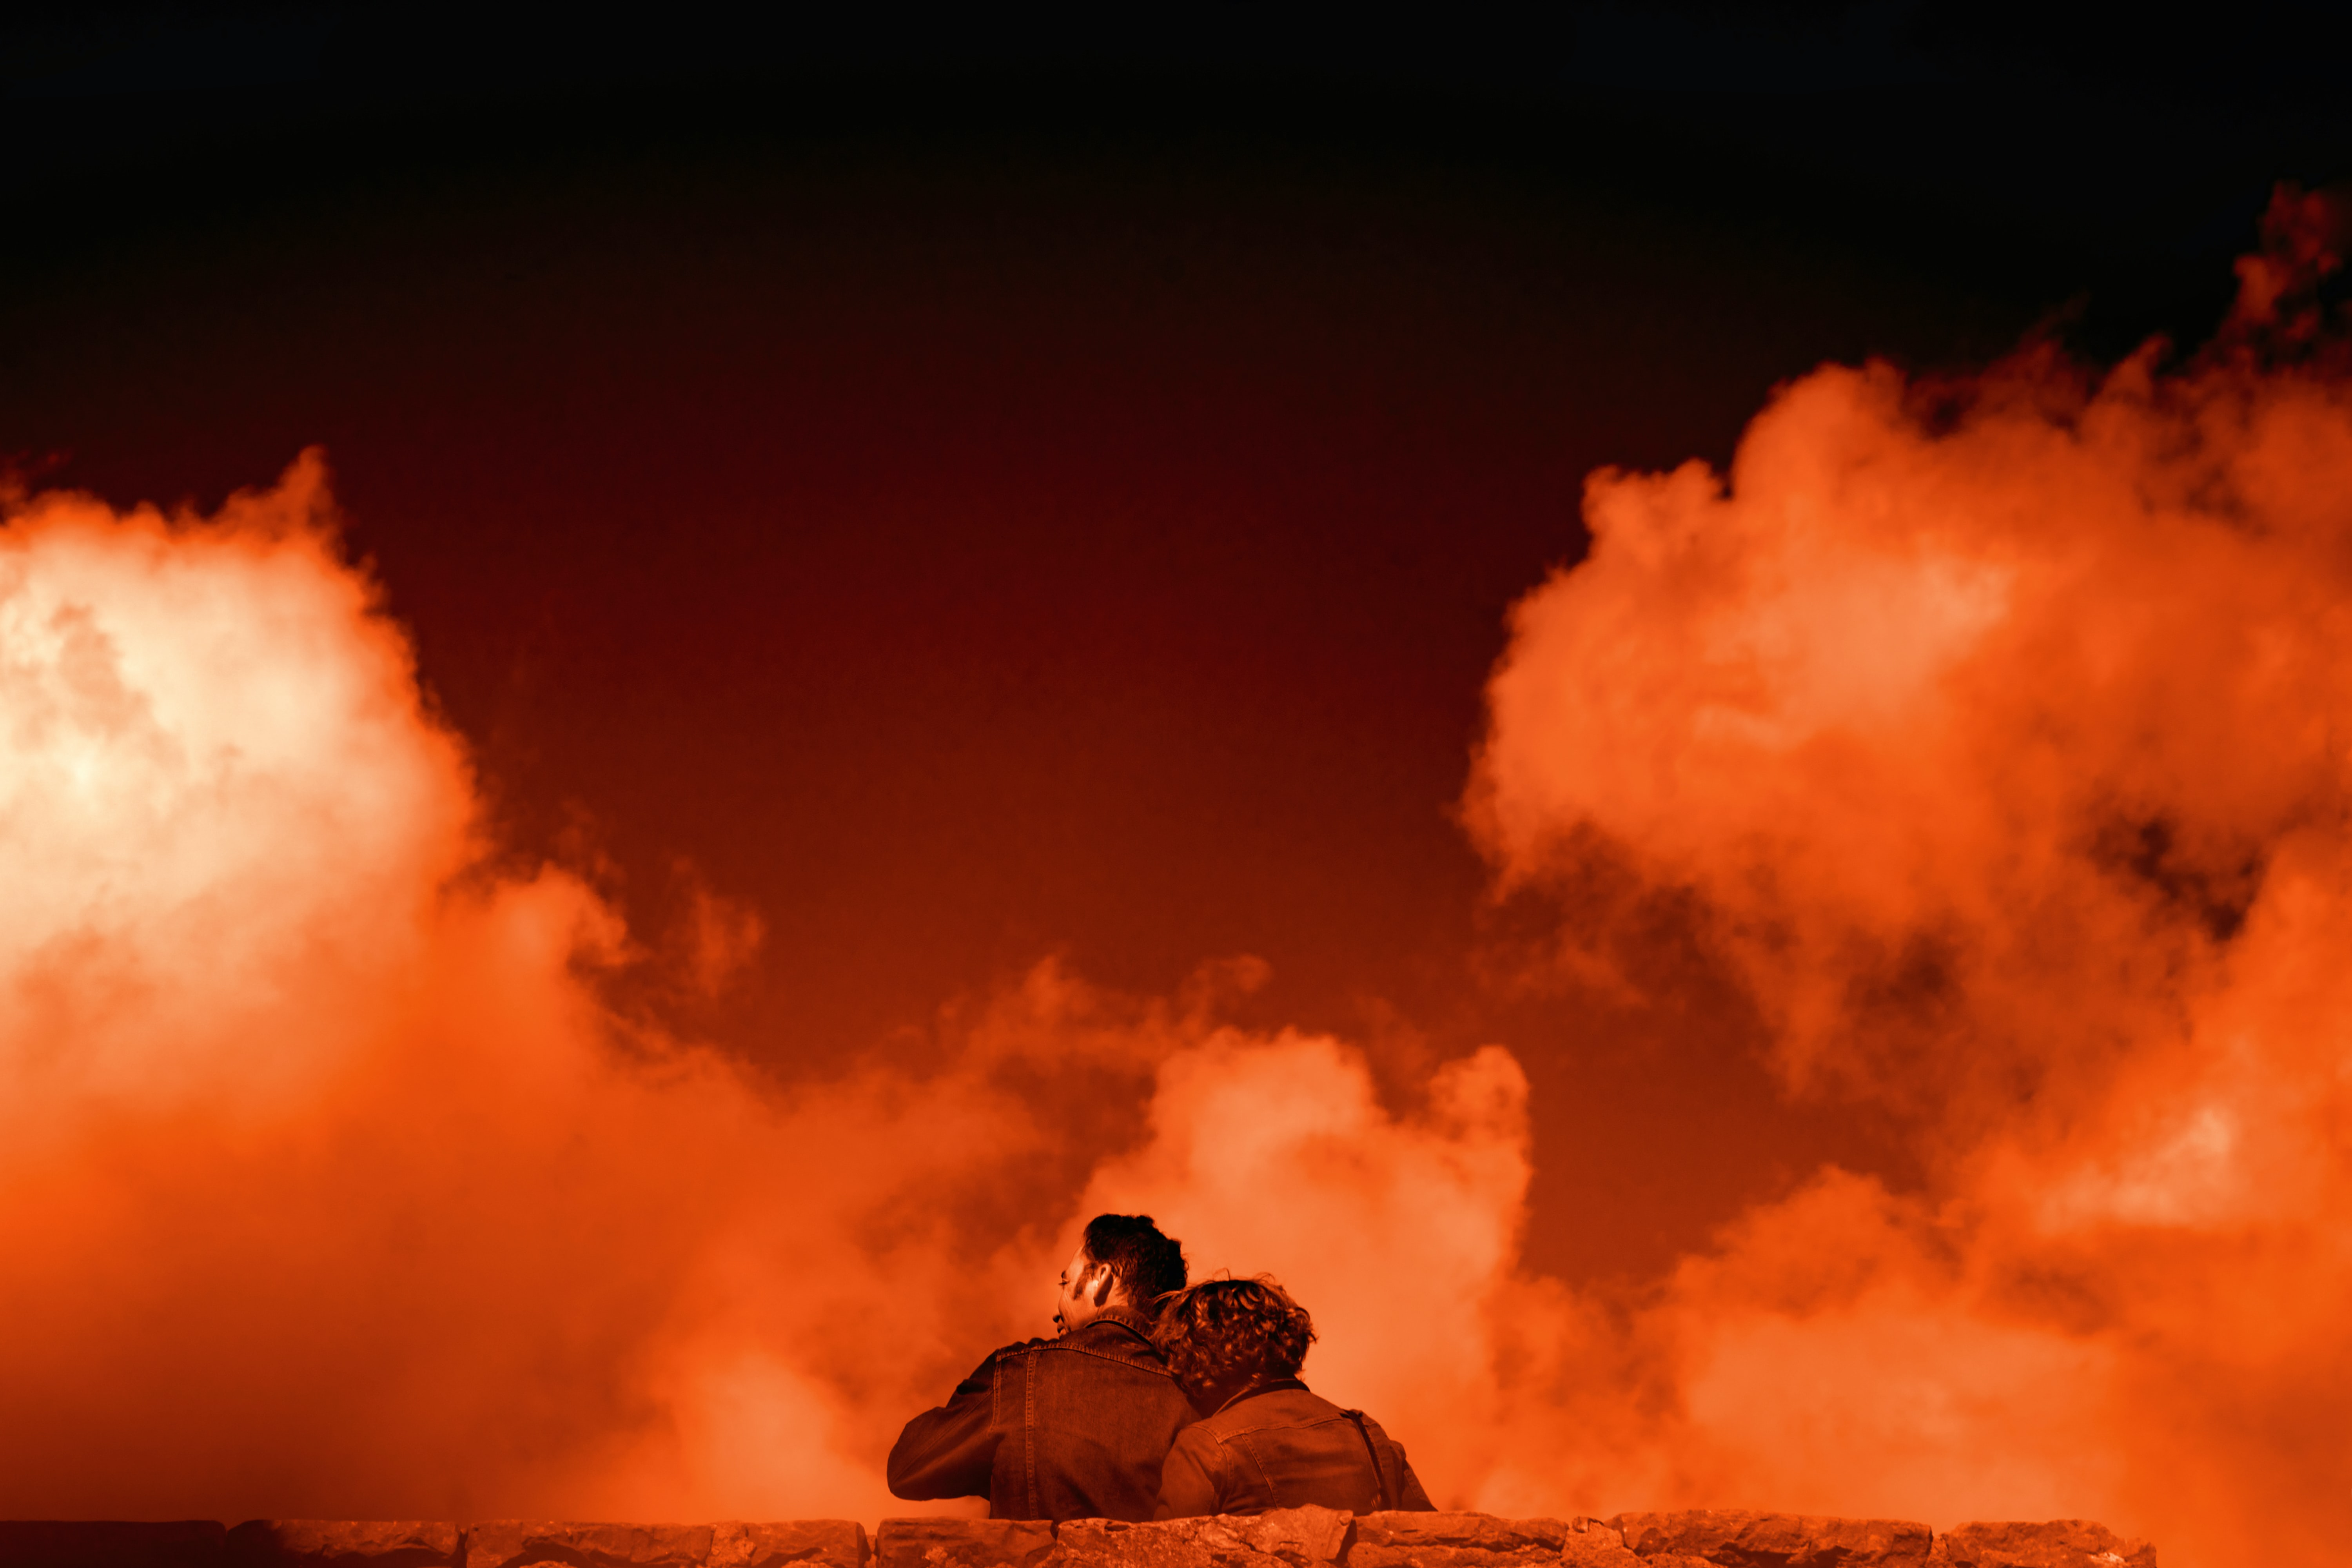 man-and-woman-on-bench-in-red-cloud-dream.jpg